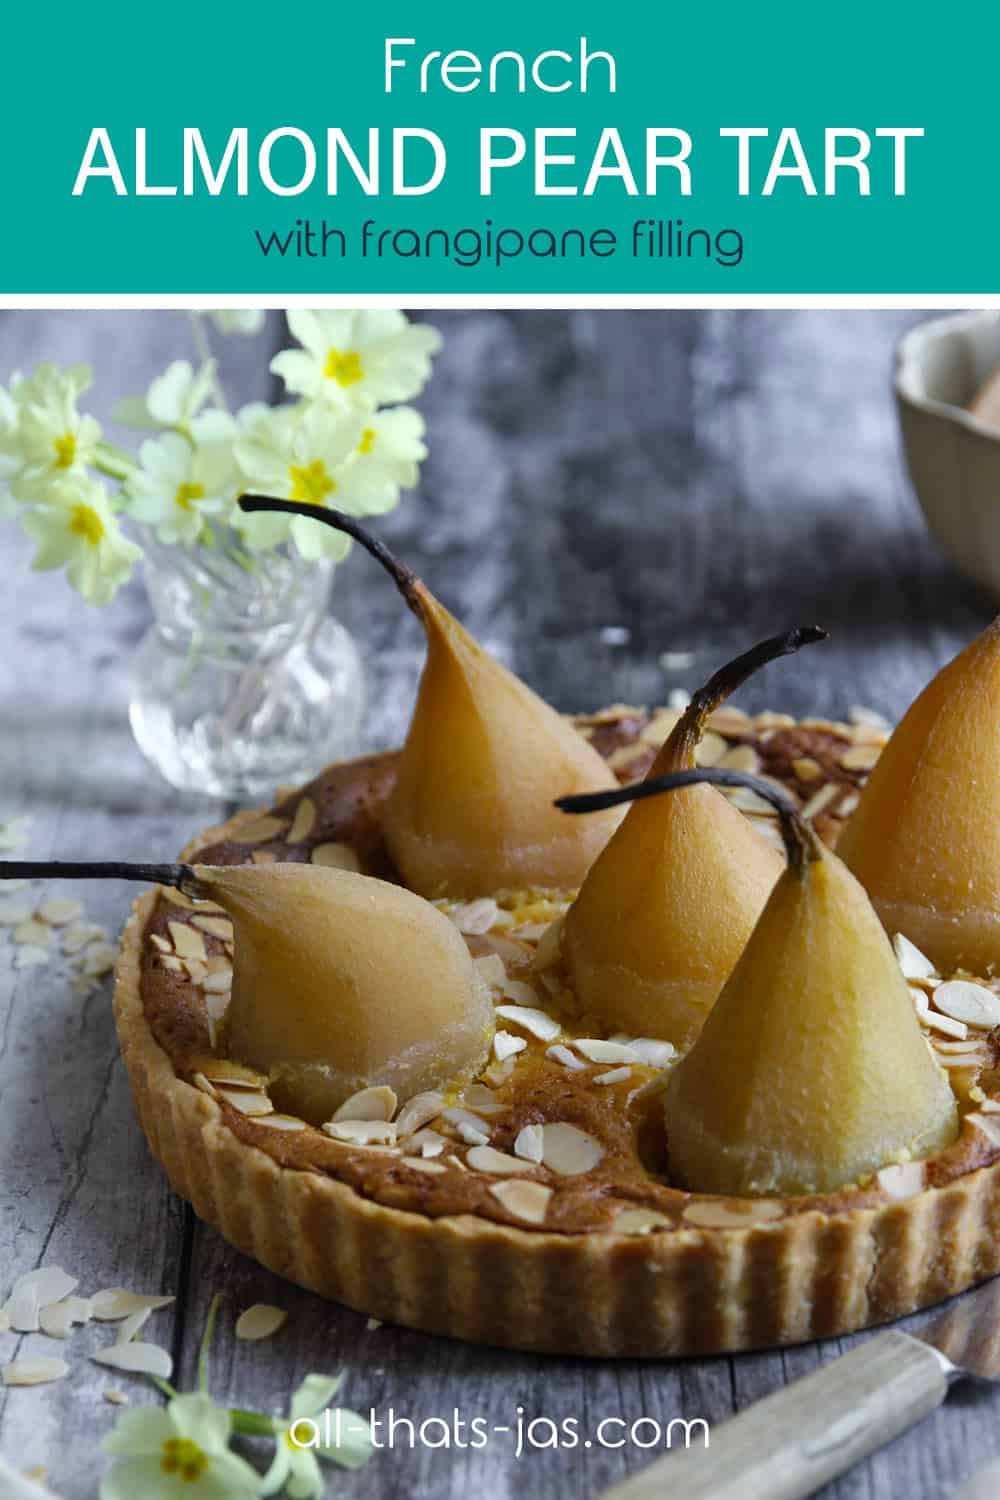 A tart with whole poached pears and text overlay.